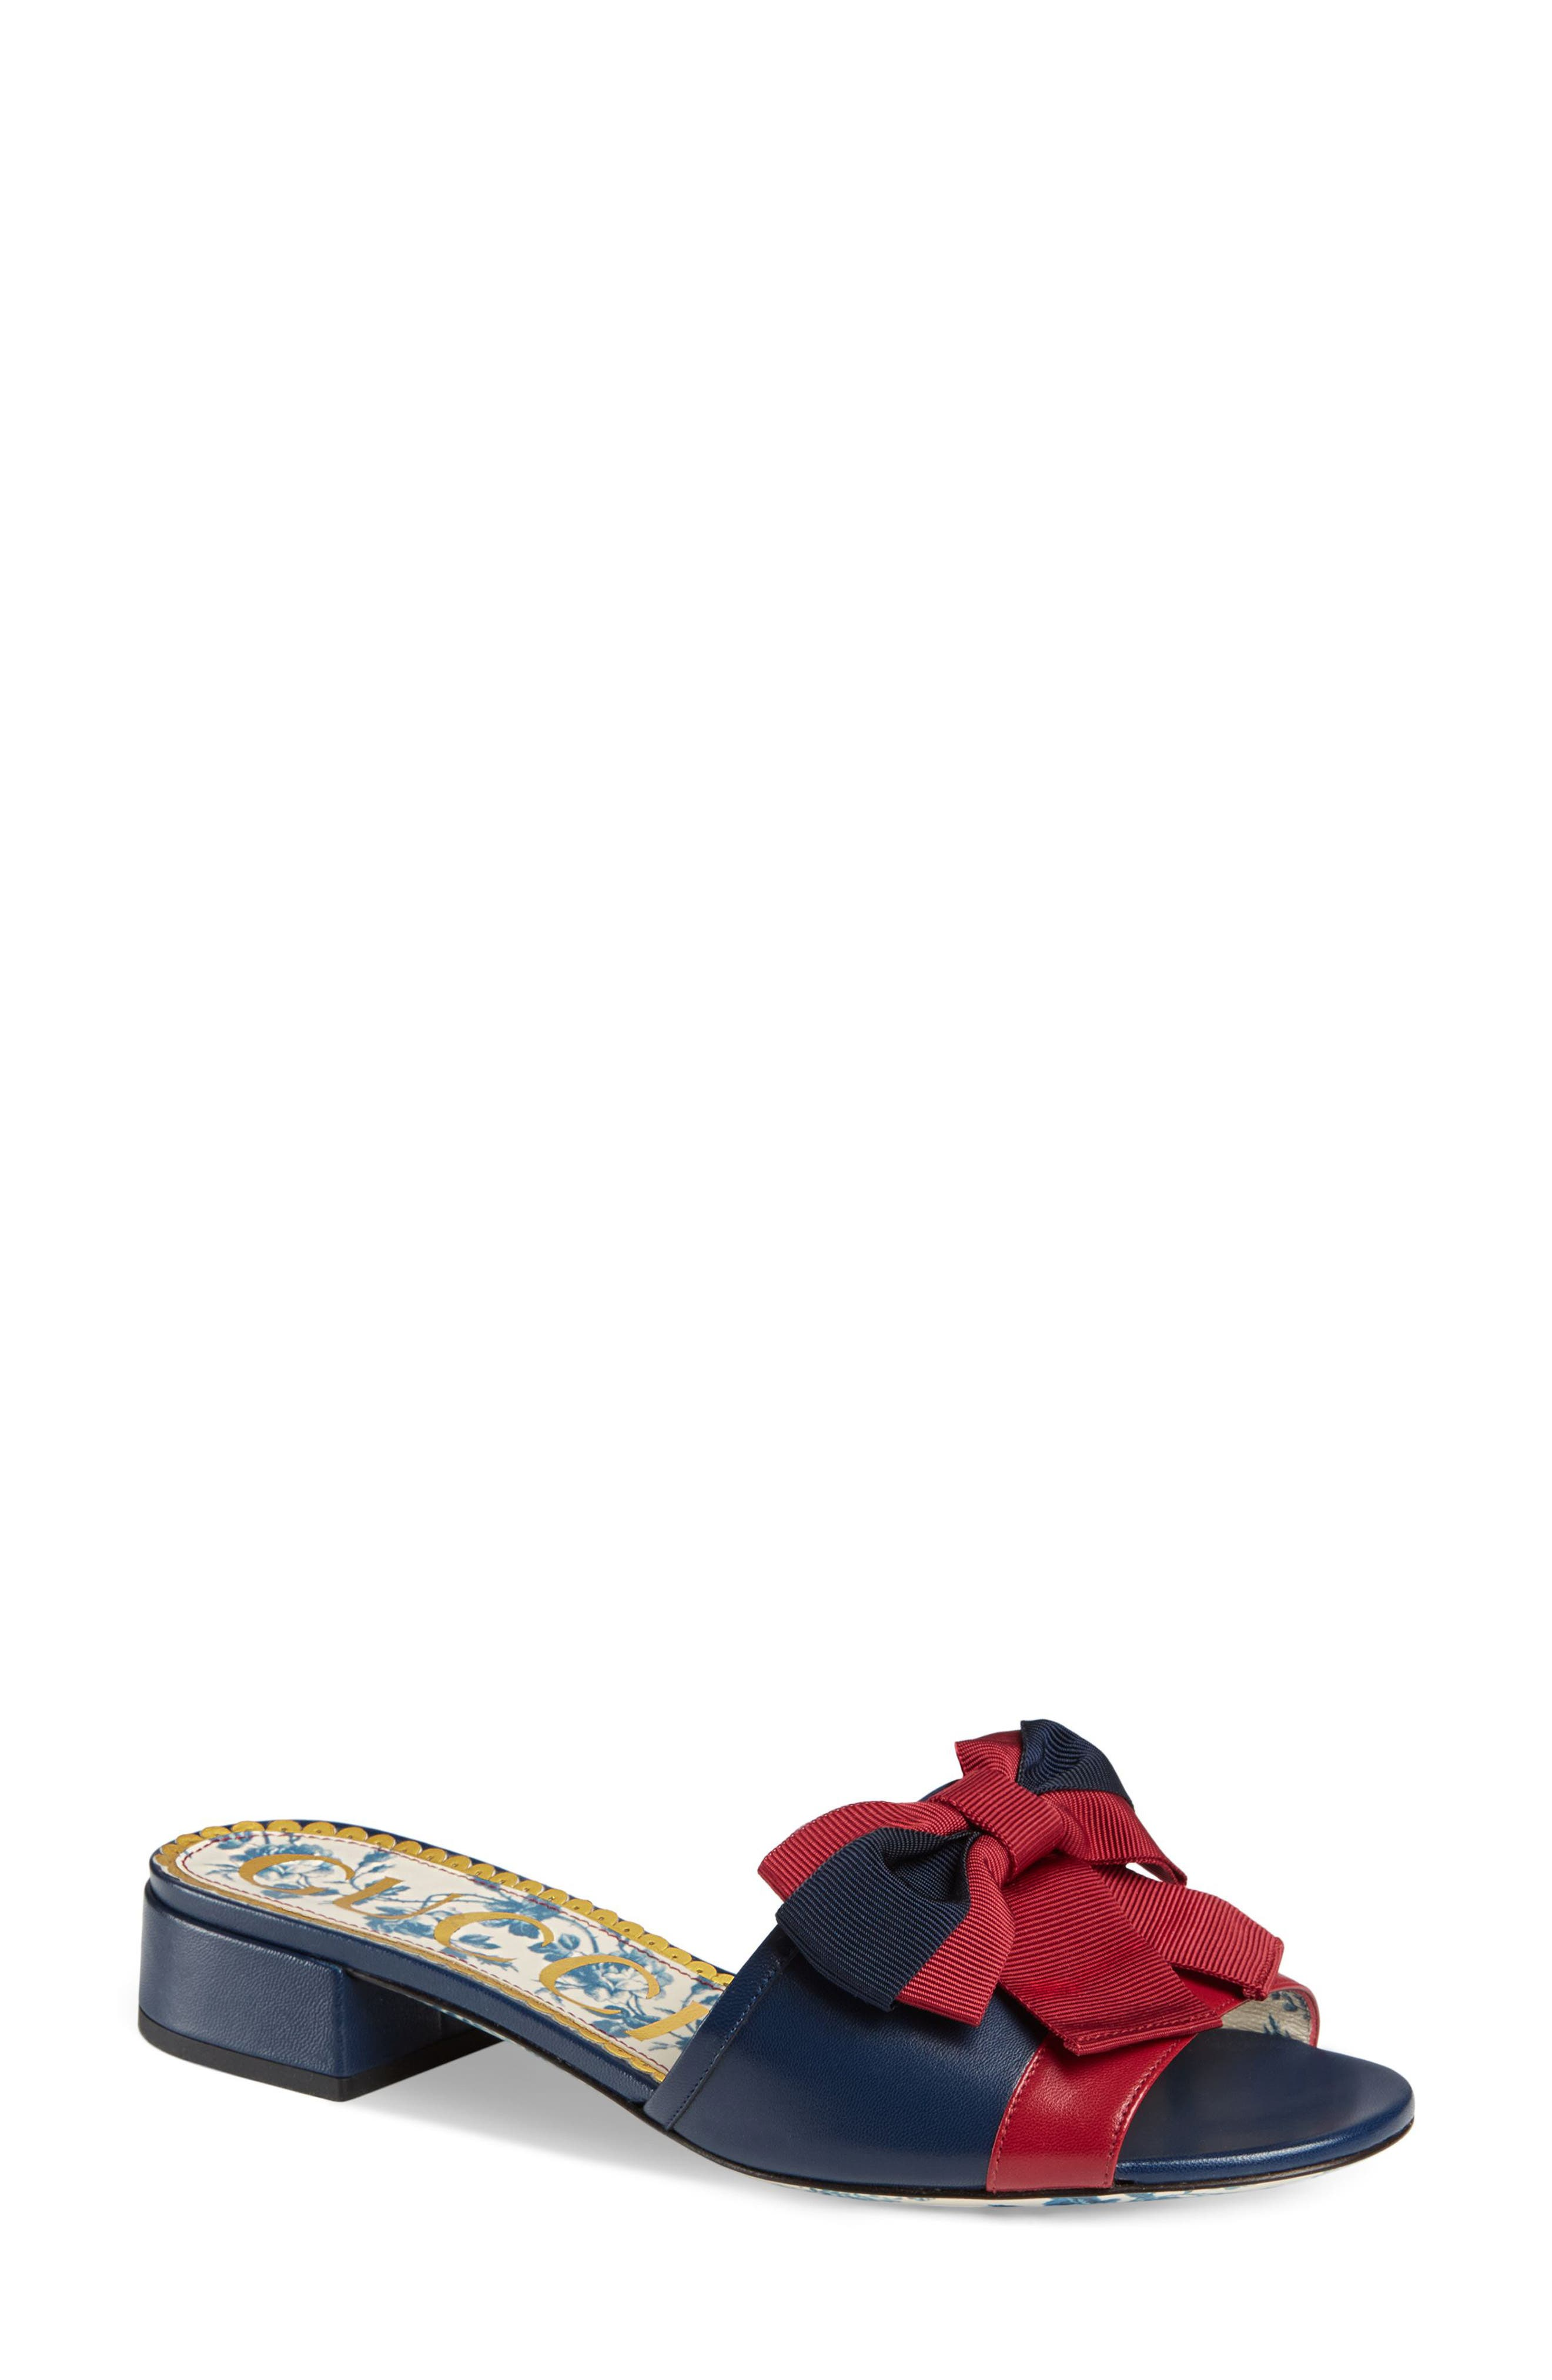 GUCCI, Sackville Bow Sandal, Main thumbnail 1, color, BLUE/ RED